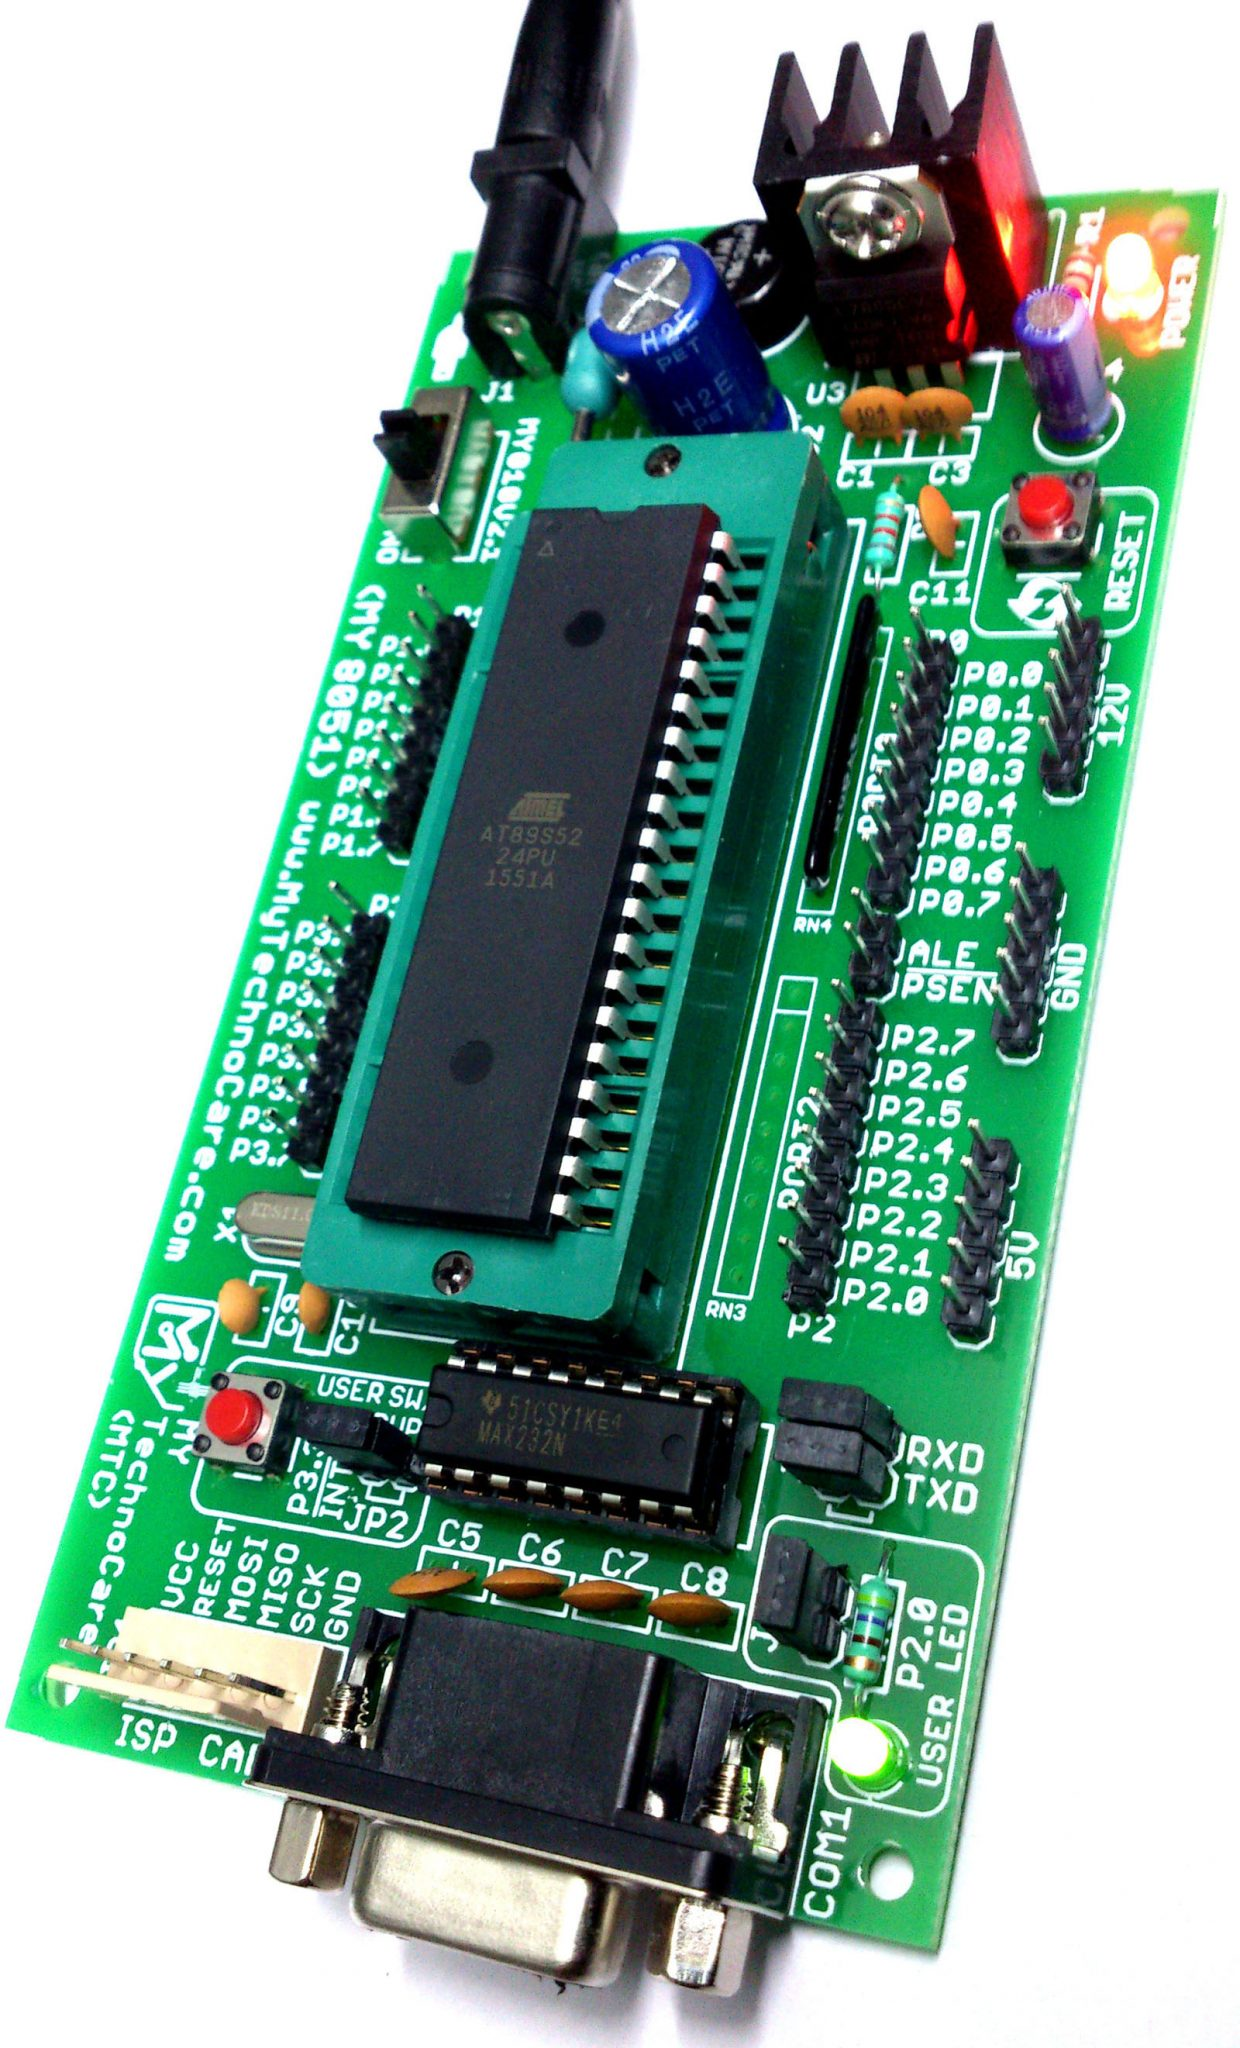 8051 Microcontroller Board With Zif Socket Kit My Technocare Digital Clock Using Rtc Ds1307 My8051 Small Development Max232 Atmel At89s52ic Project Board8051